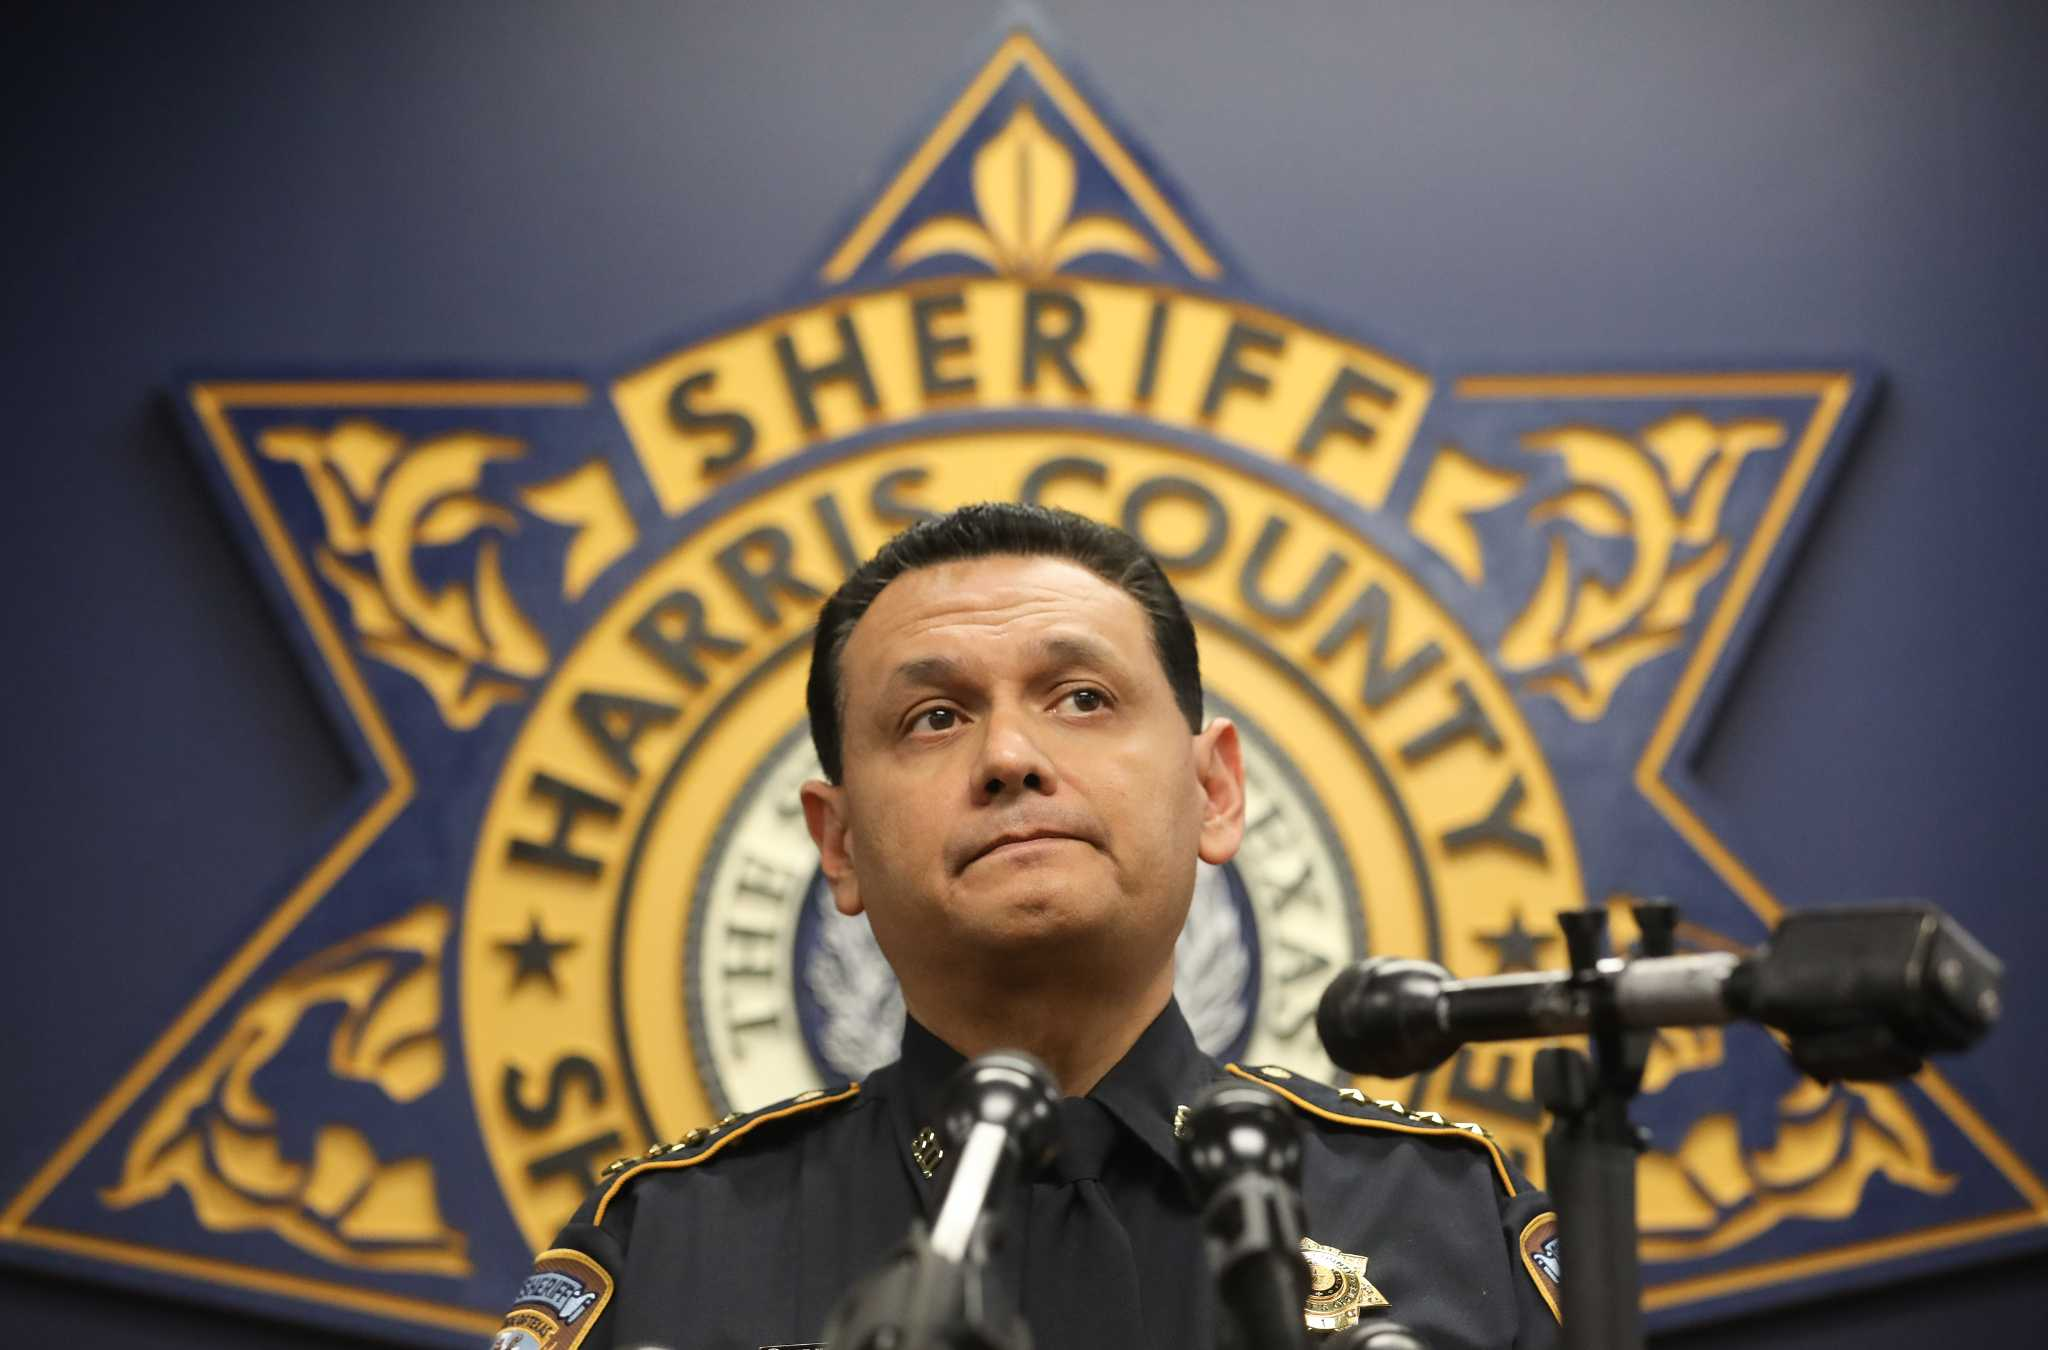 John hernandez state farm agent - Harris Co Sheriff Launches Inquiry Into Other Deputies Who Responded To Denny S Choking Case Houston Chronicle